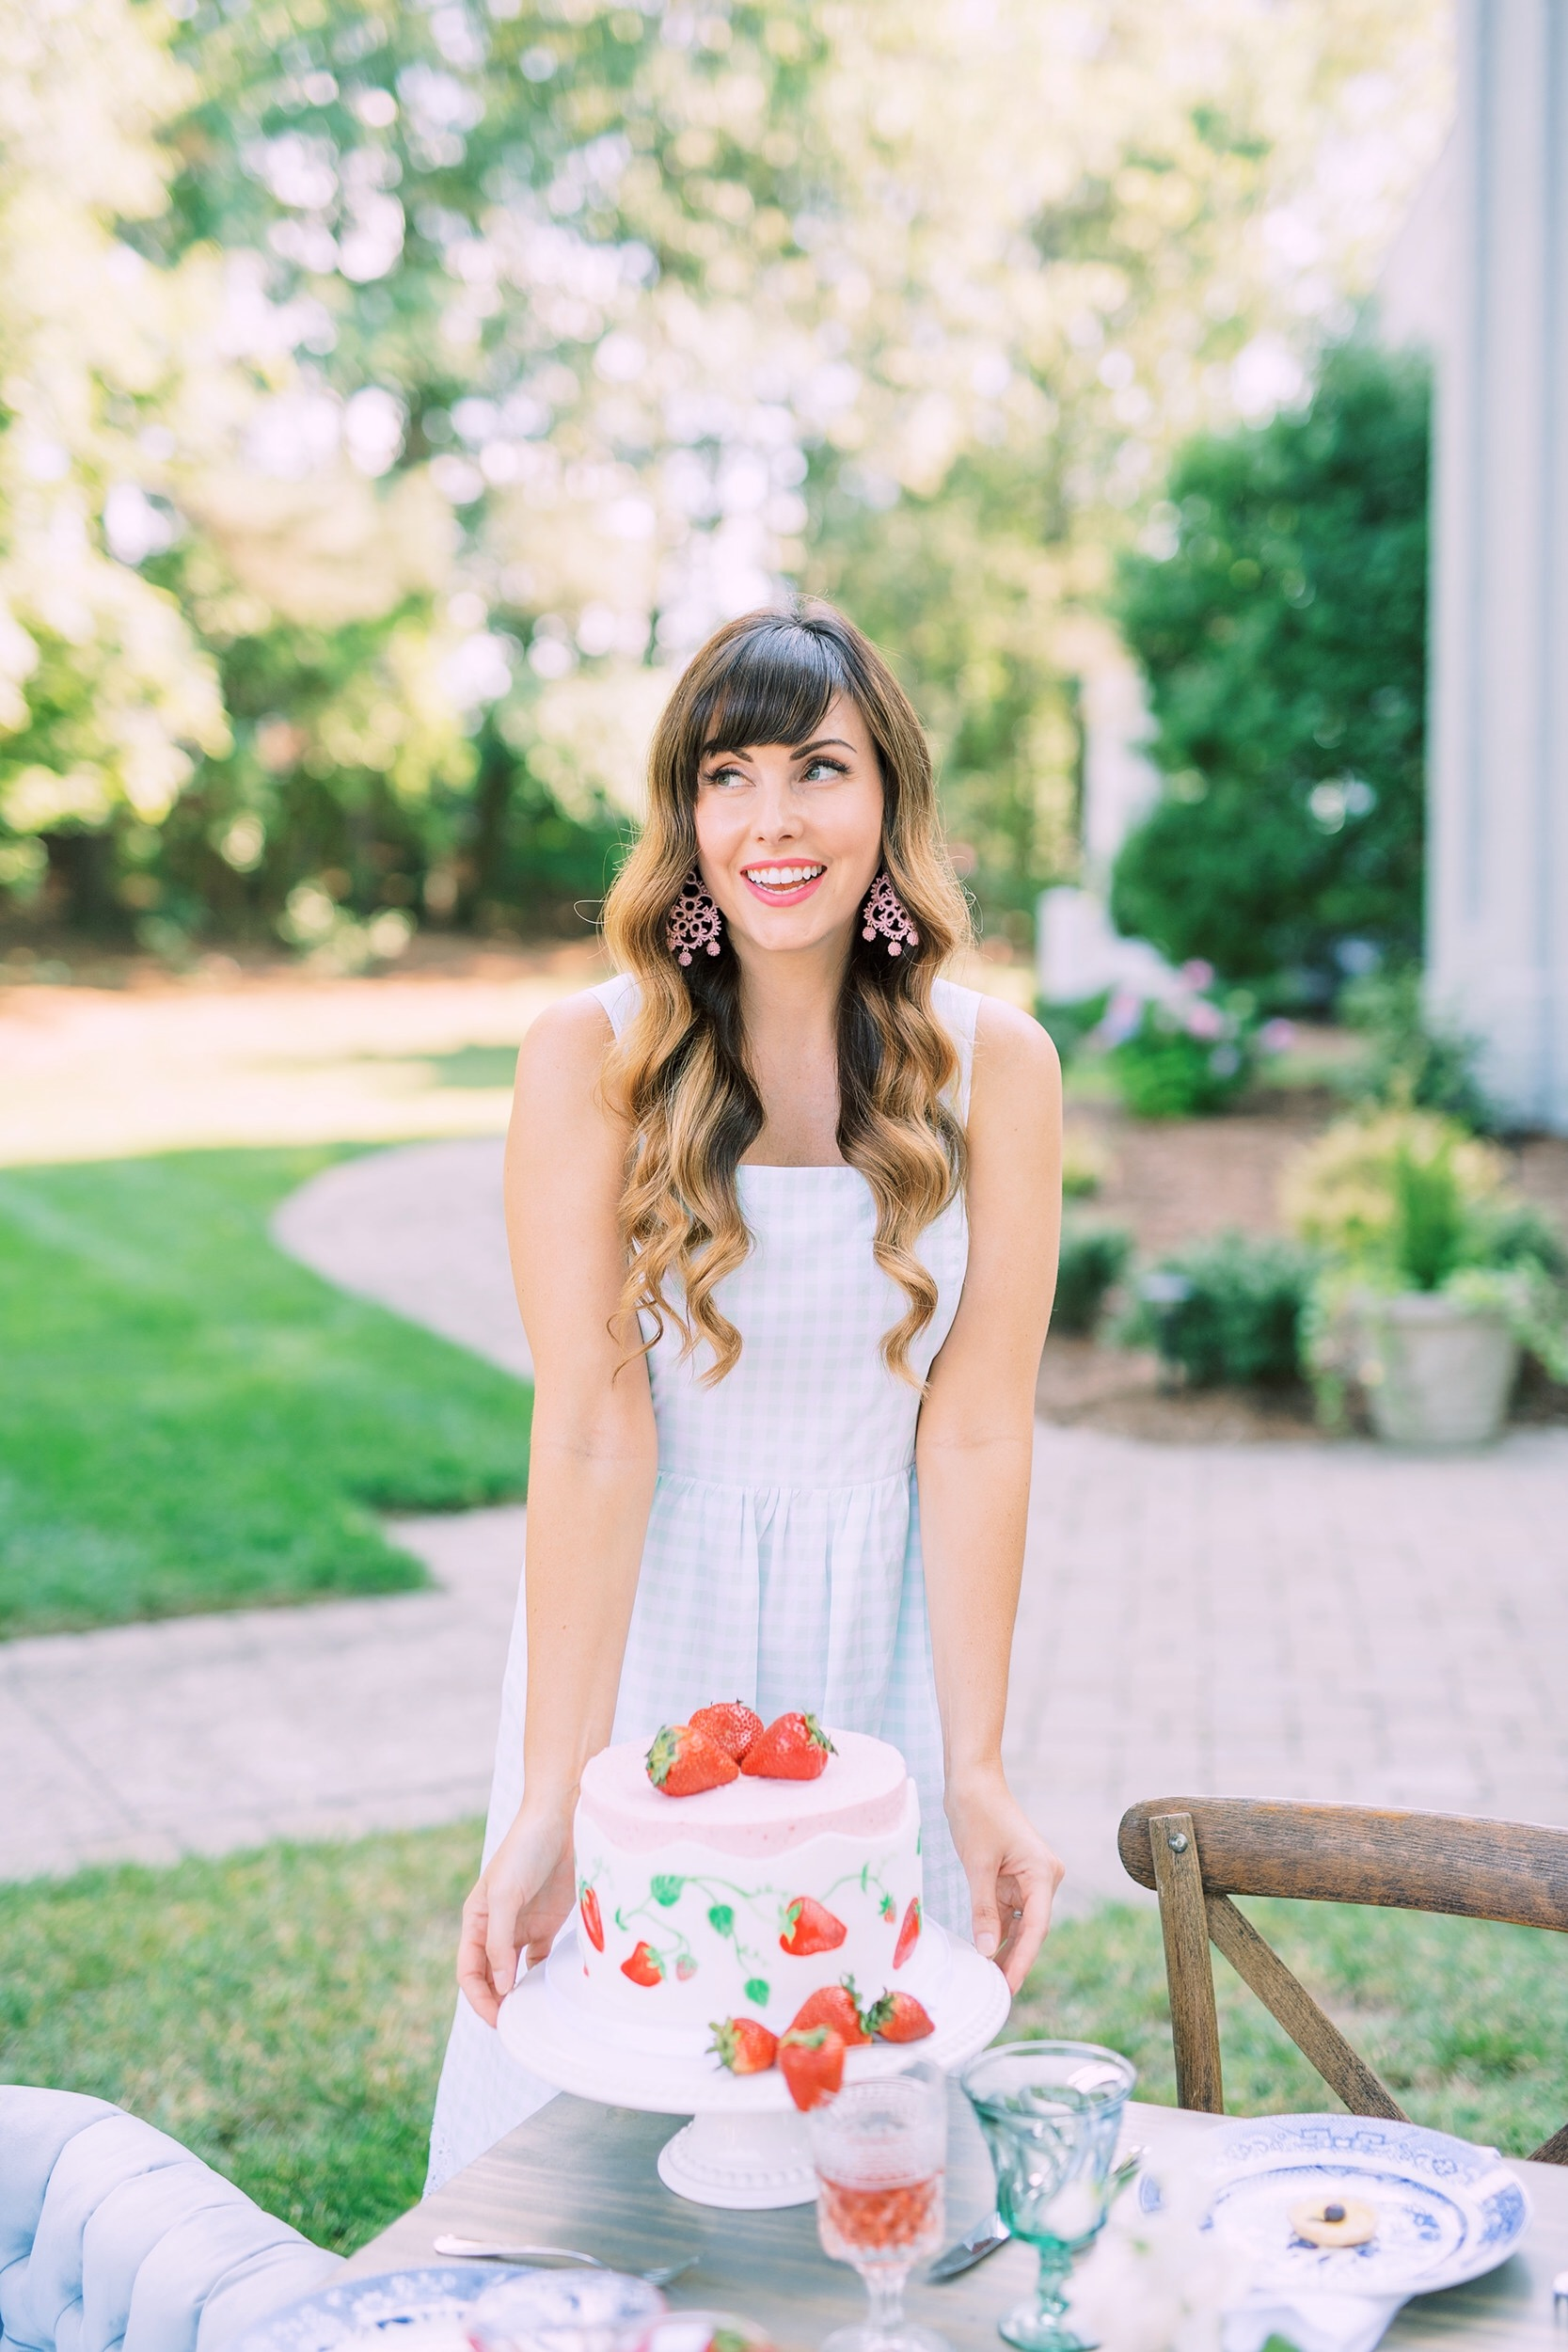 draper james gingham dress and strawverry cake.JPG